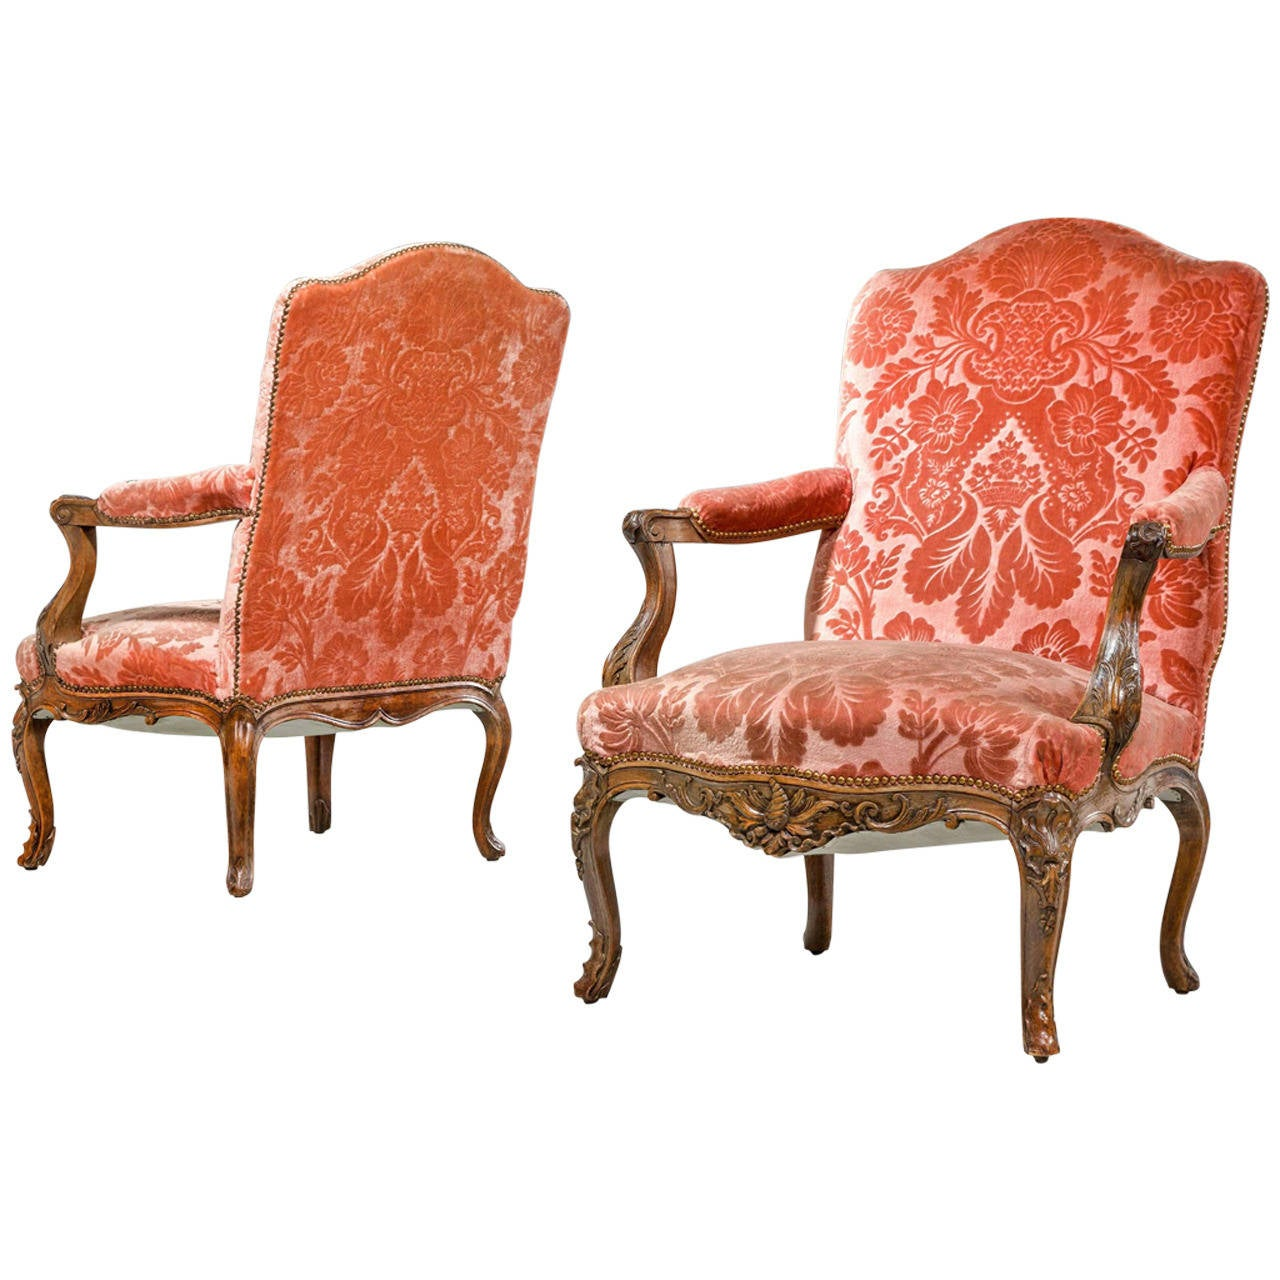 pair of louis xiv design fauteuils at 1stdibs. Black Bedroom Furniture Sets. Home Design Ideas